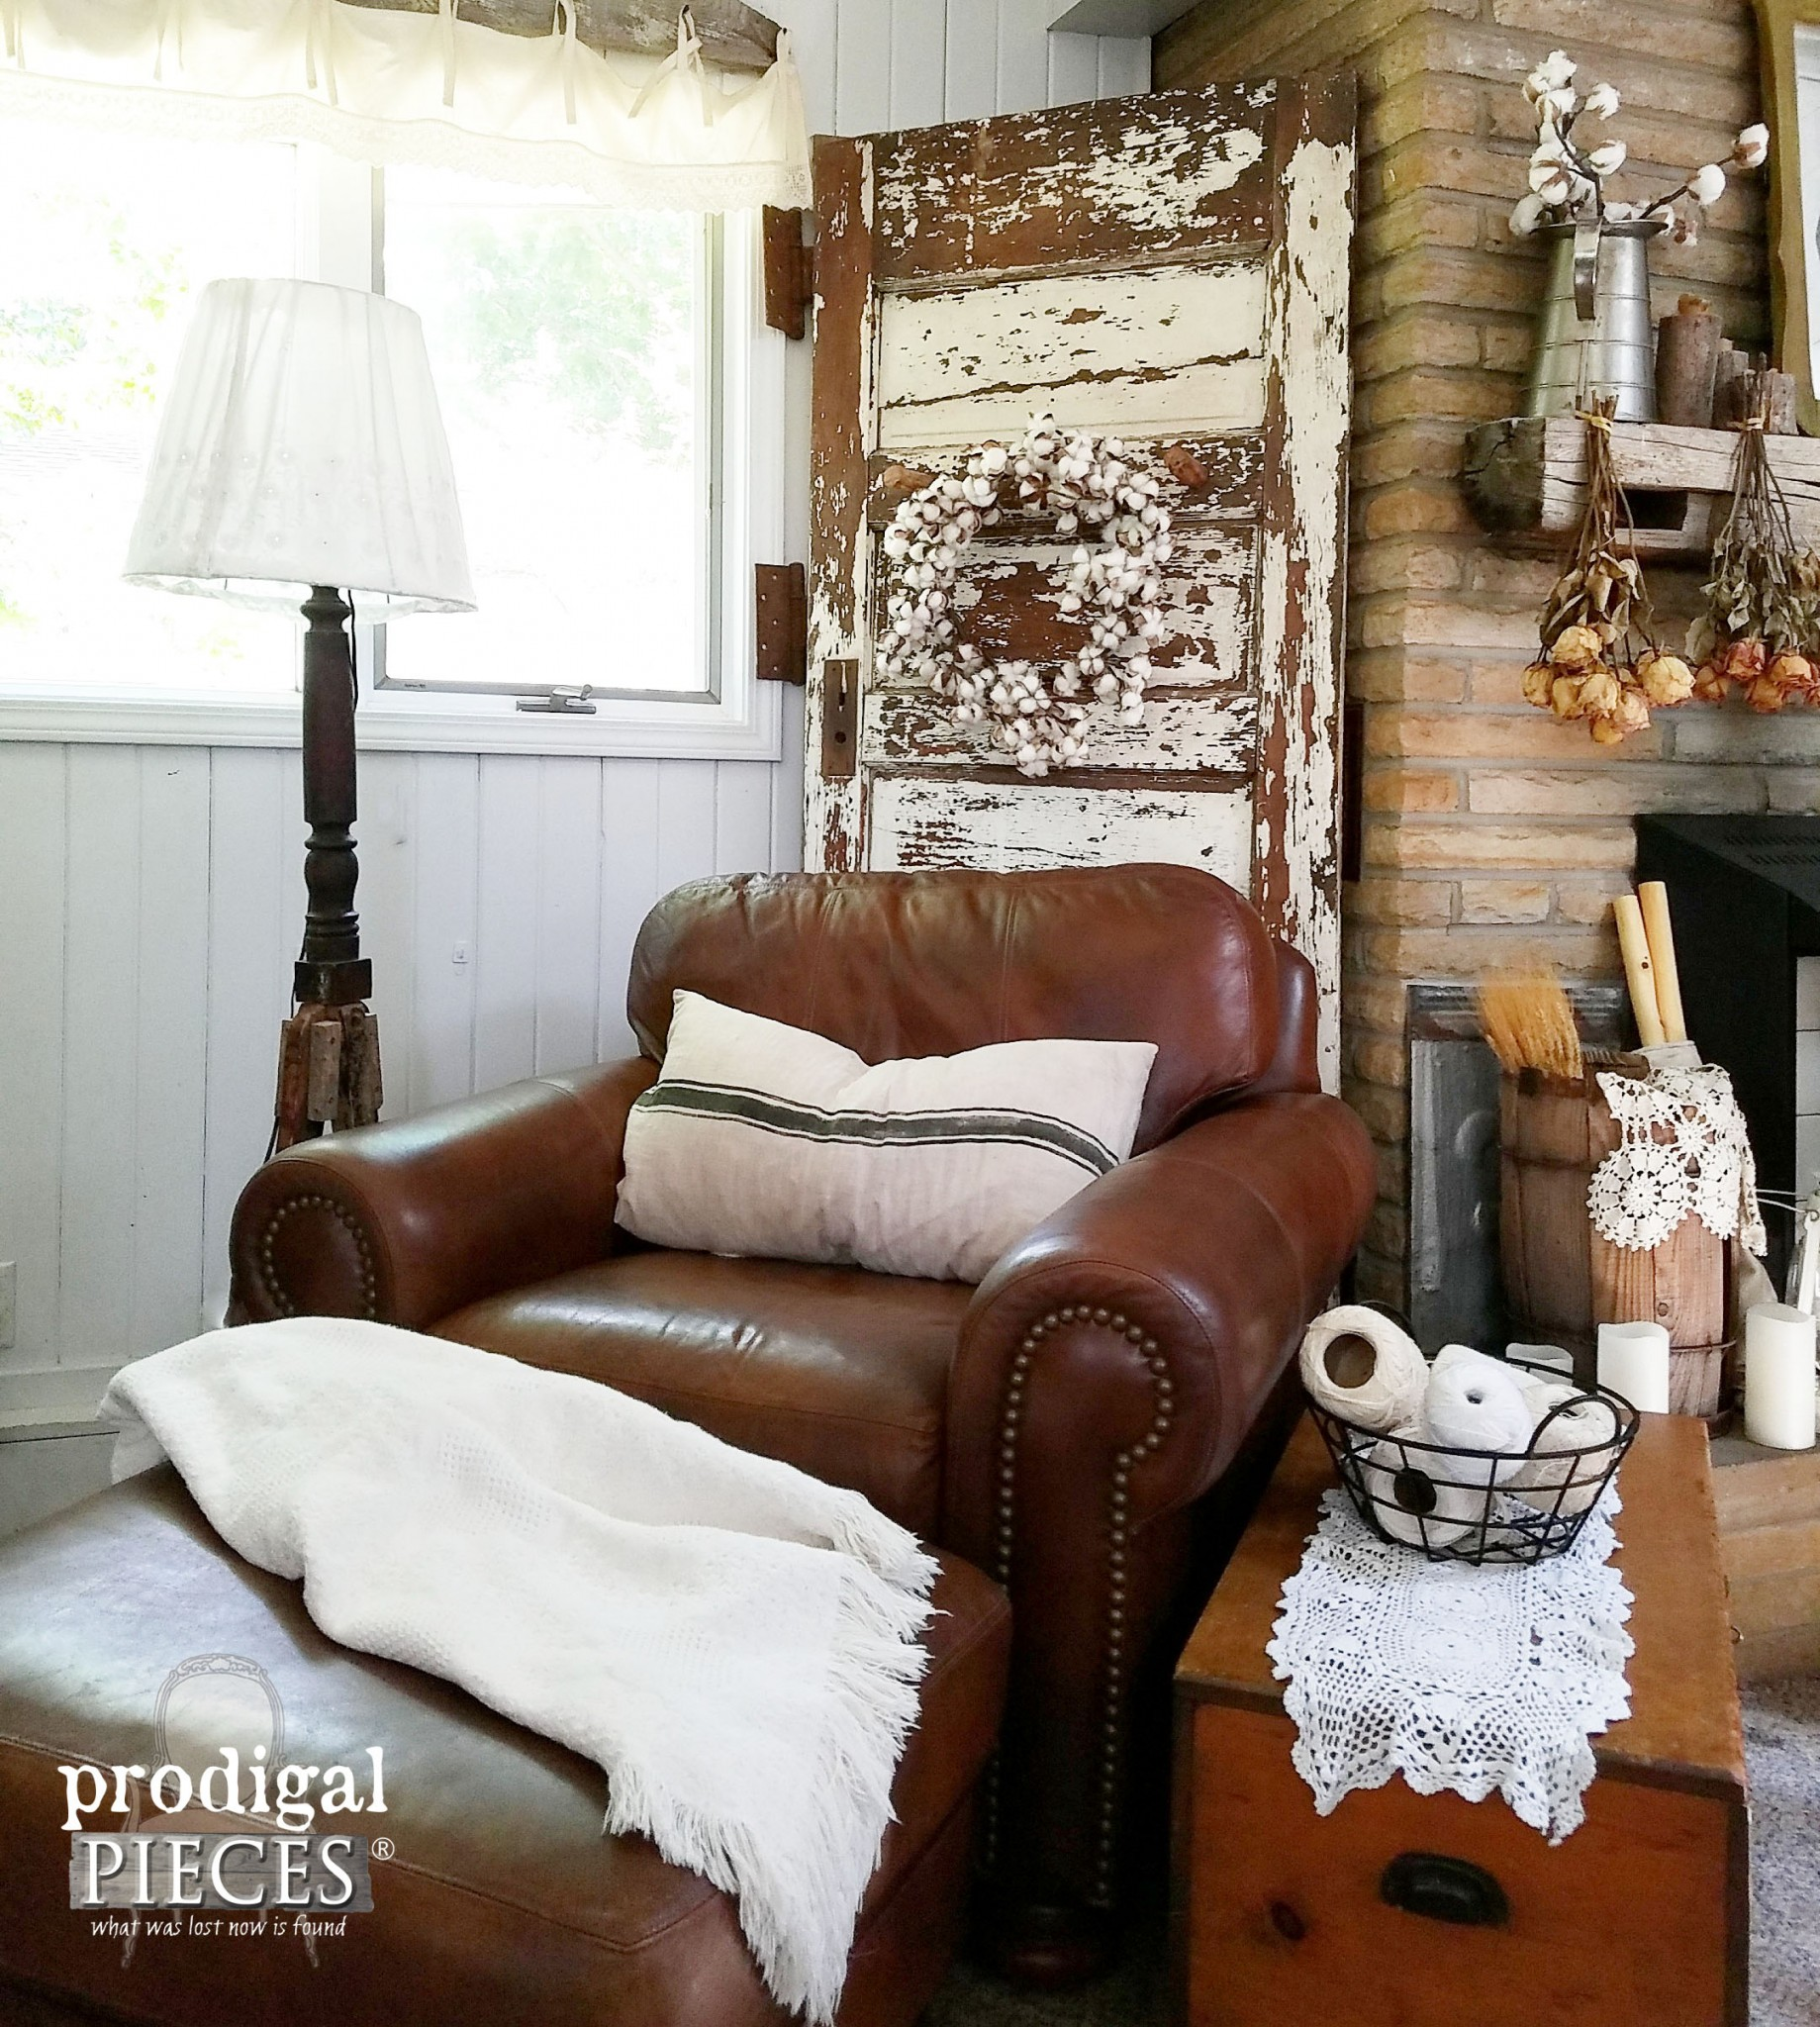 Rustic Farmhouse Eclectic Style Family Room with Leather and Fireplace | Prodigal Pieces | www.prodigalpieces.com